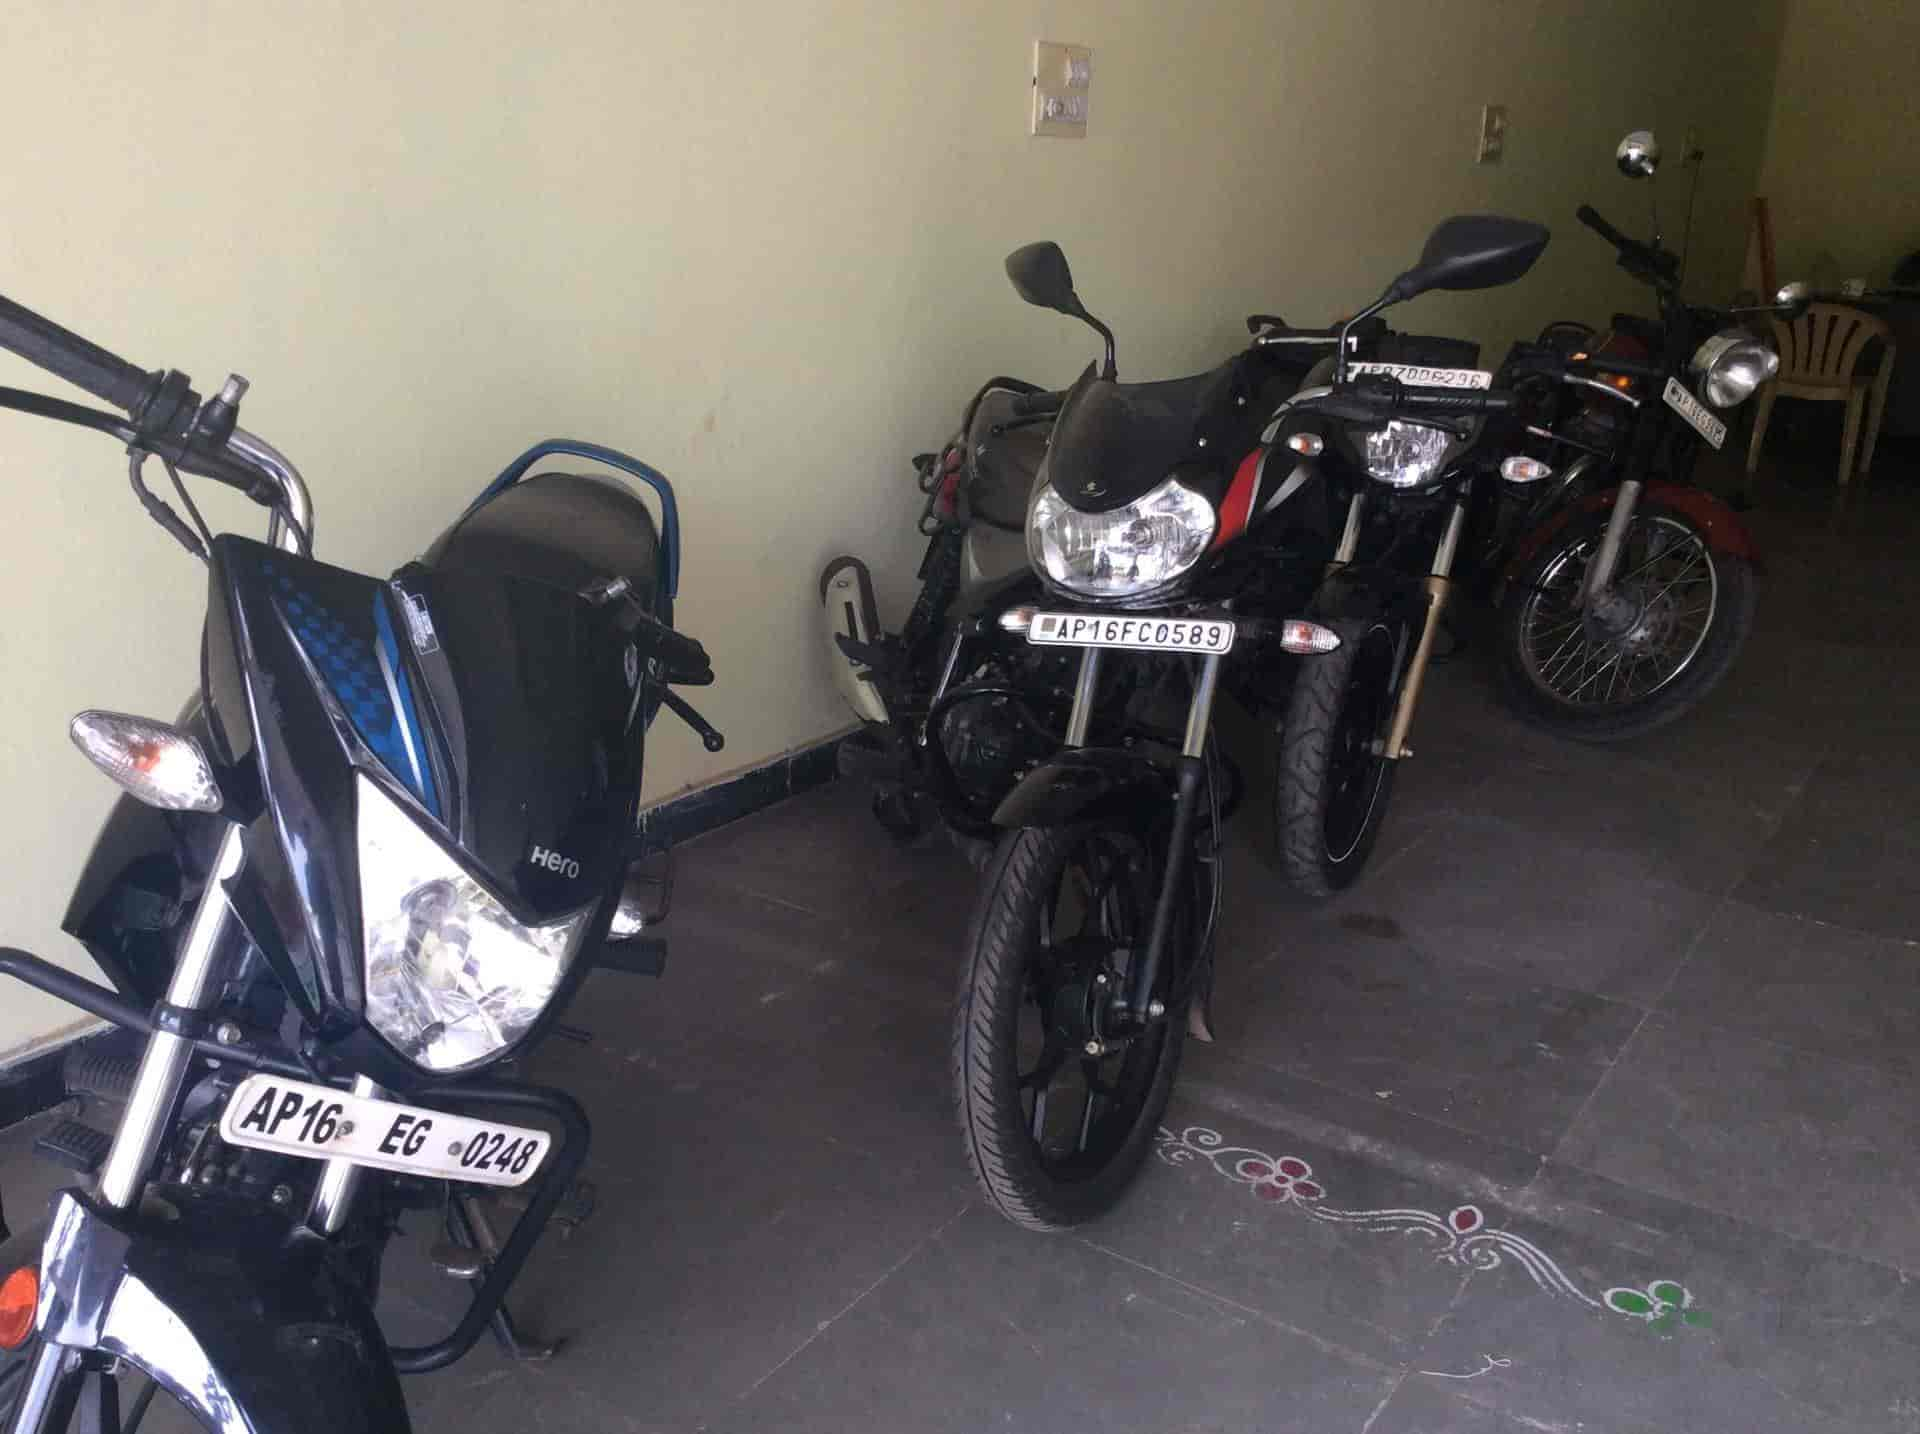 Quikr Cars And Bikes, Patamata - Second Hand Car Dealers in